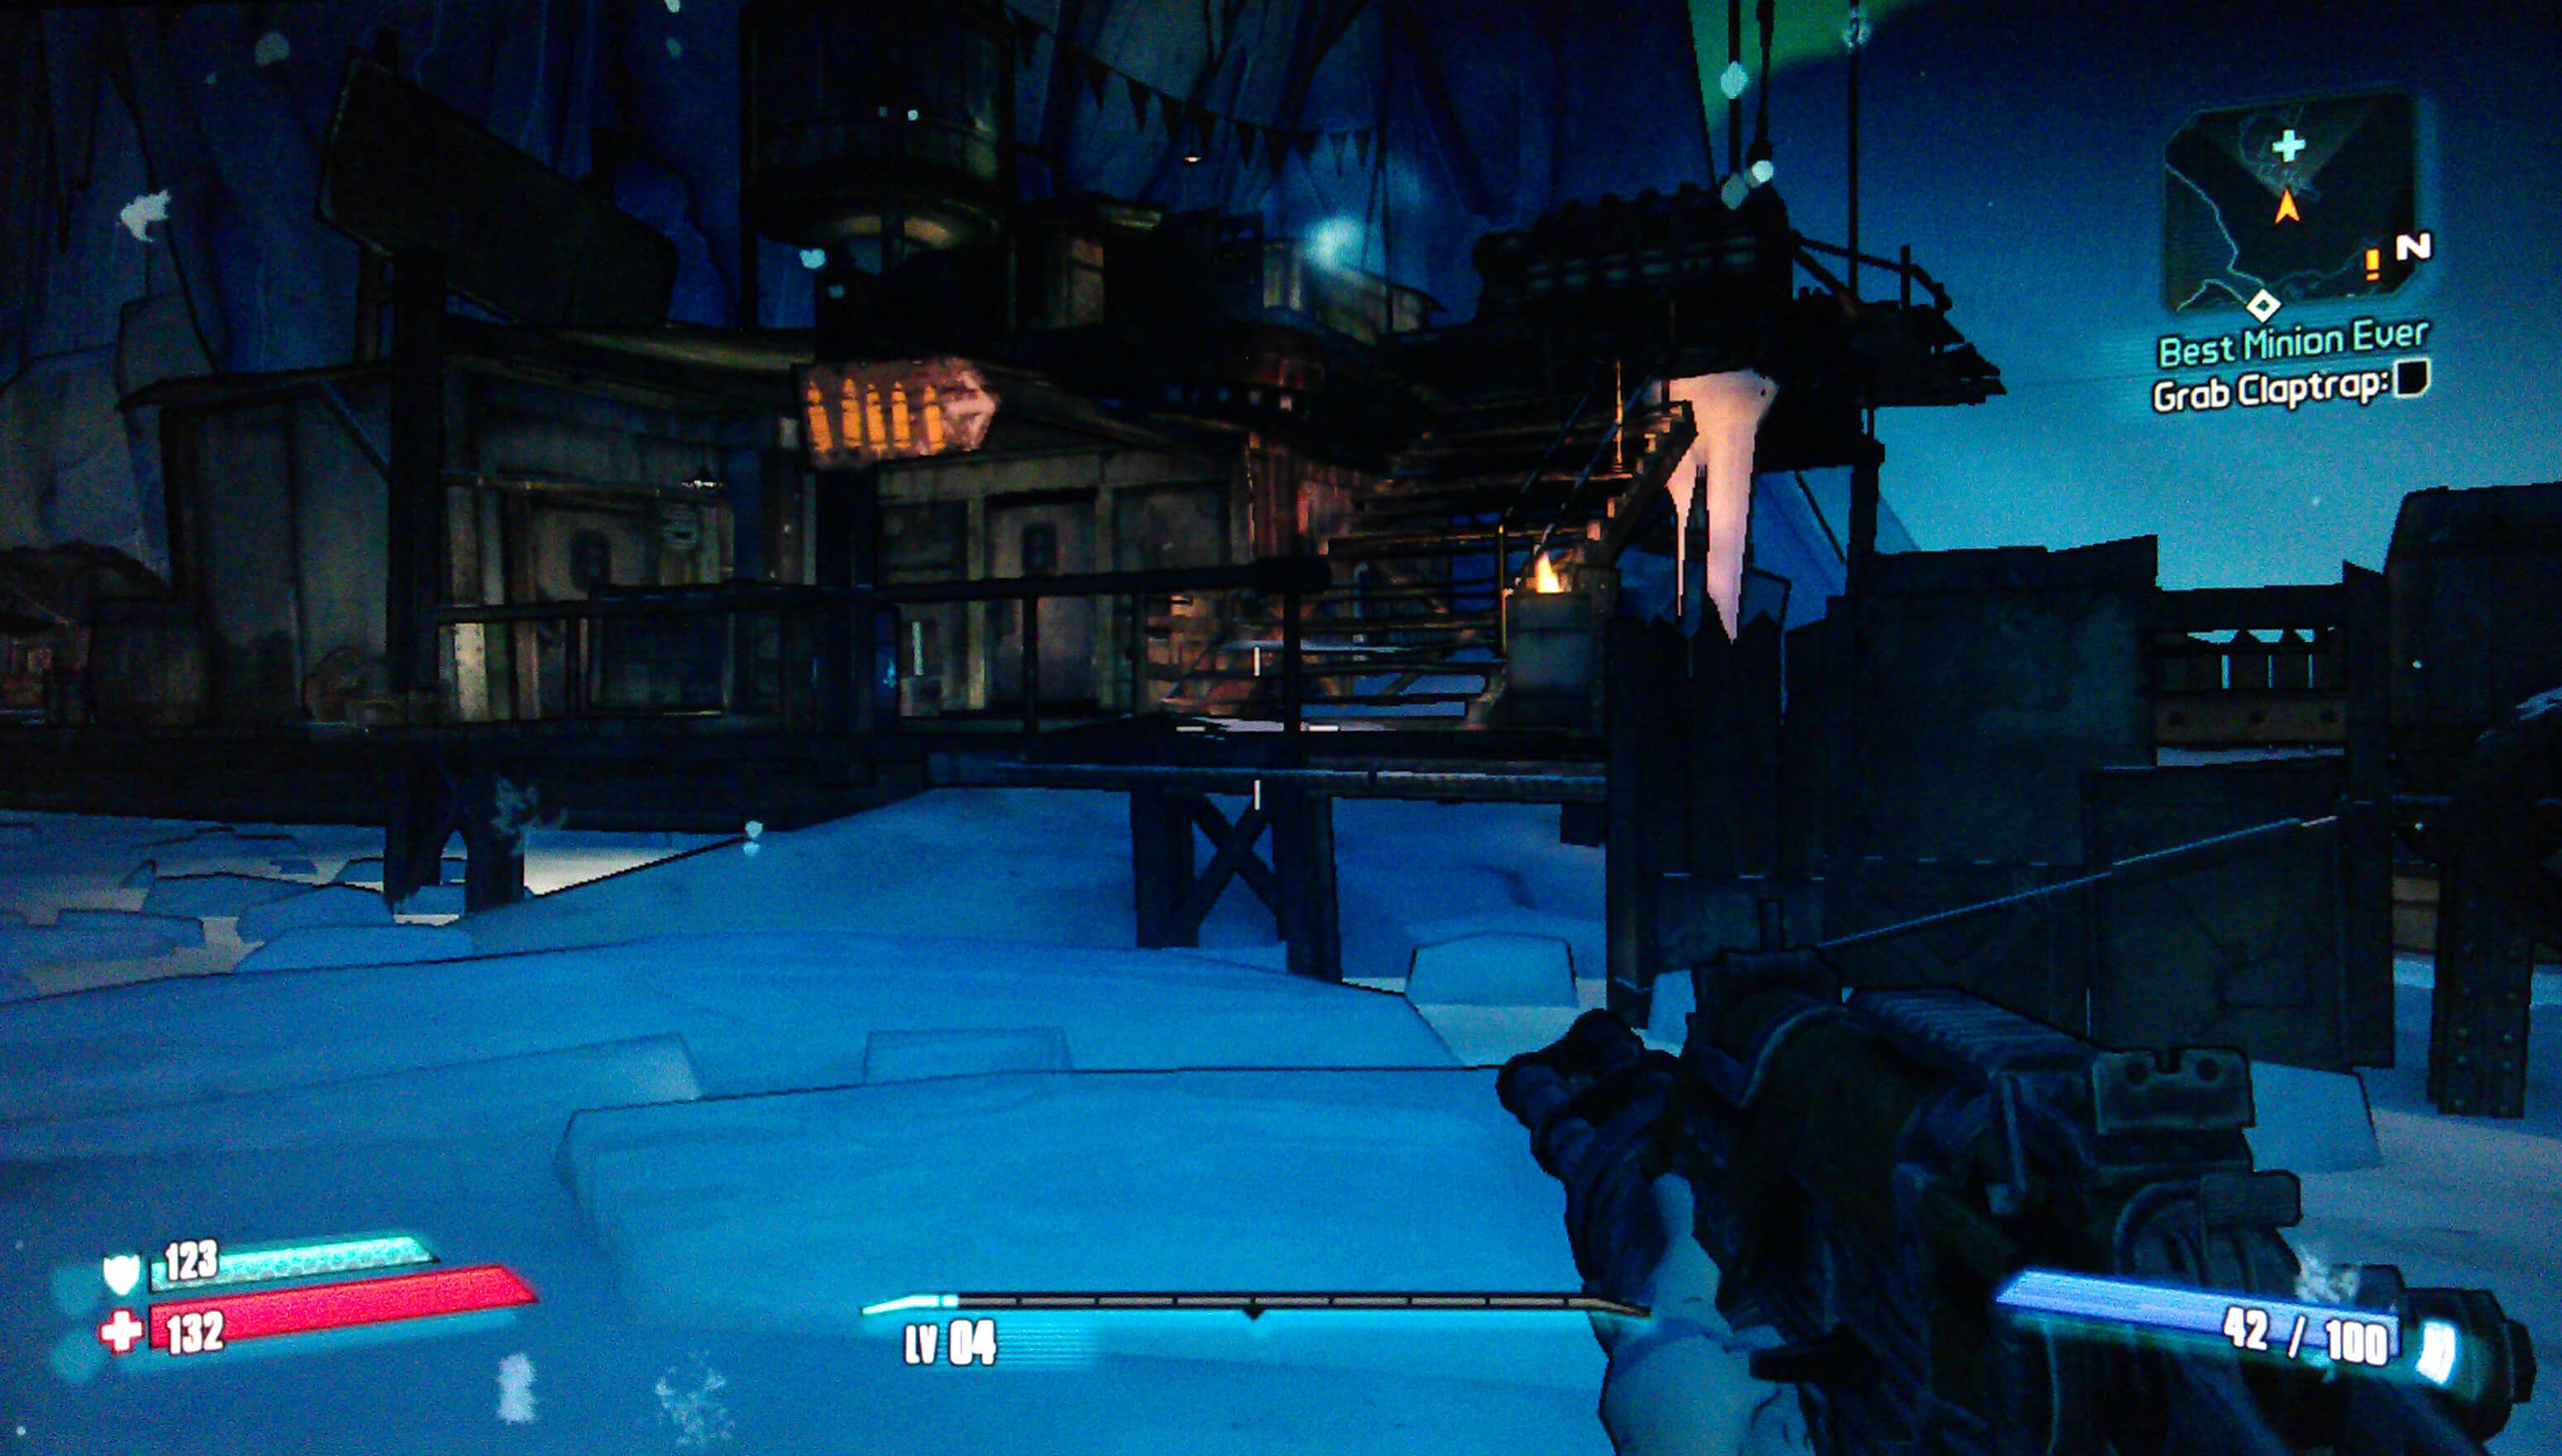 Borderlands 2 Shielded Favors Walkthrough - VGFAQ Borderlands 2 Walkthrough